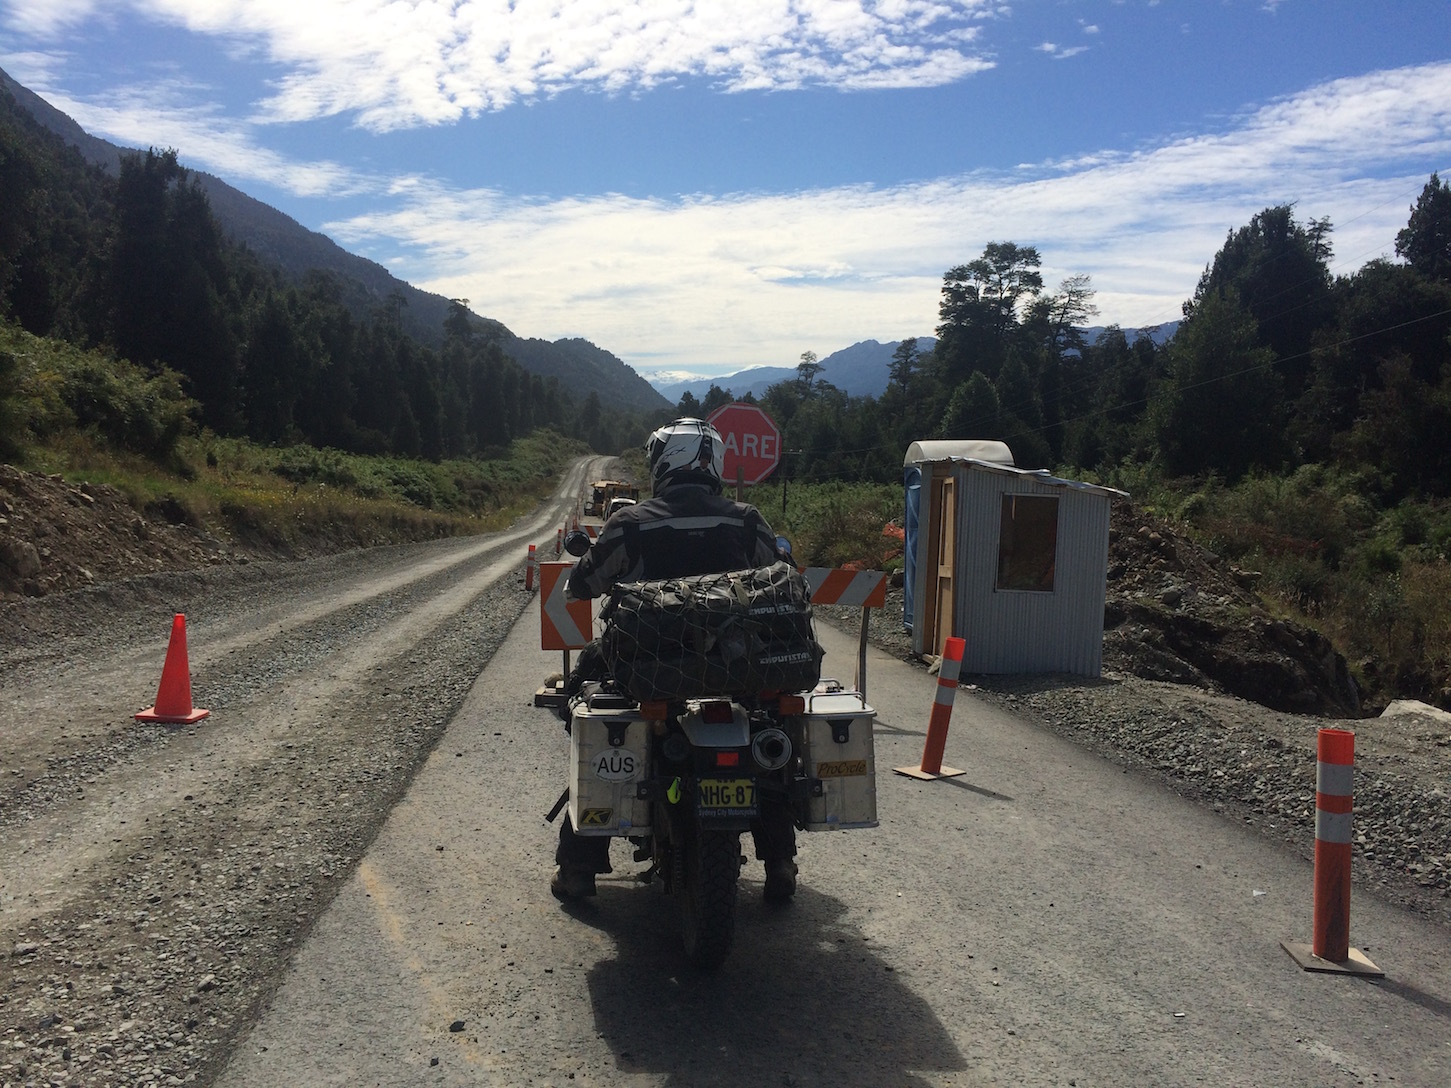 Carretera Austral - en-route to Yelcho Lake - some daily gravel roads.